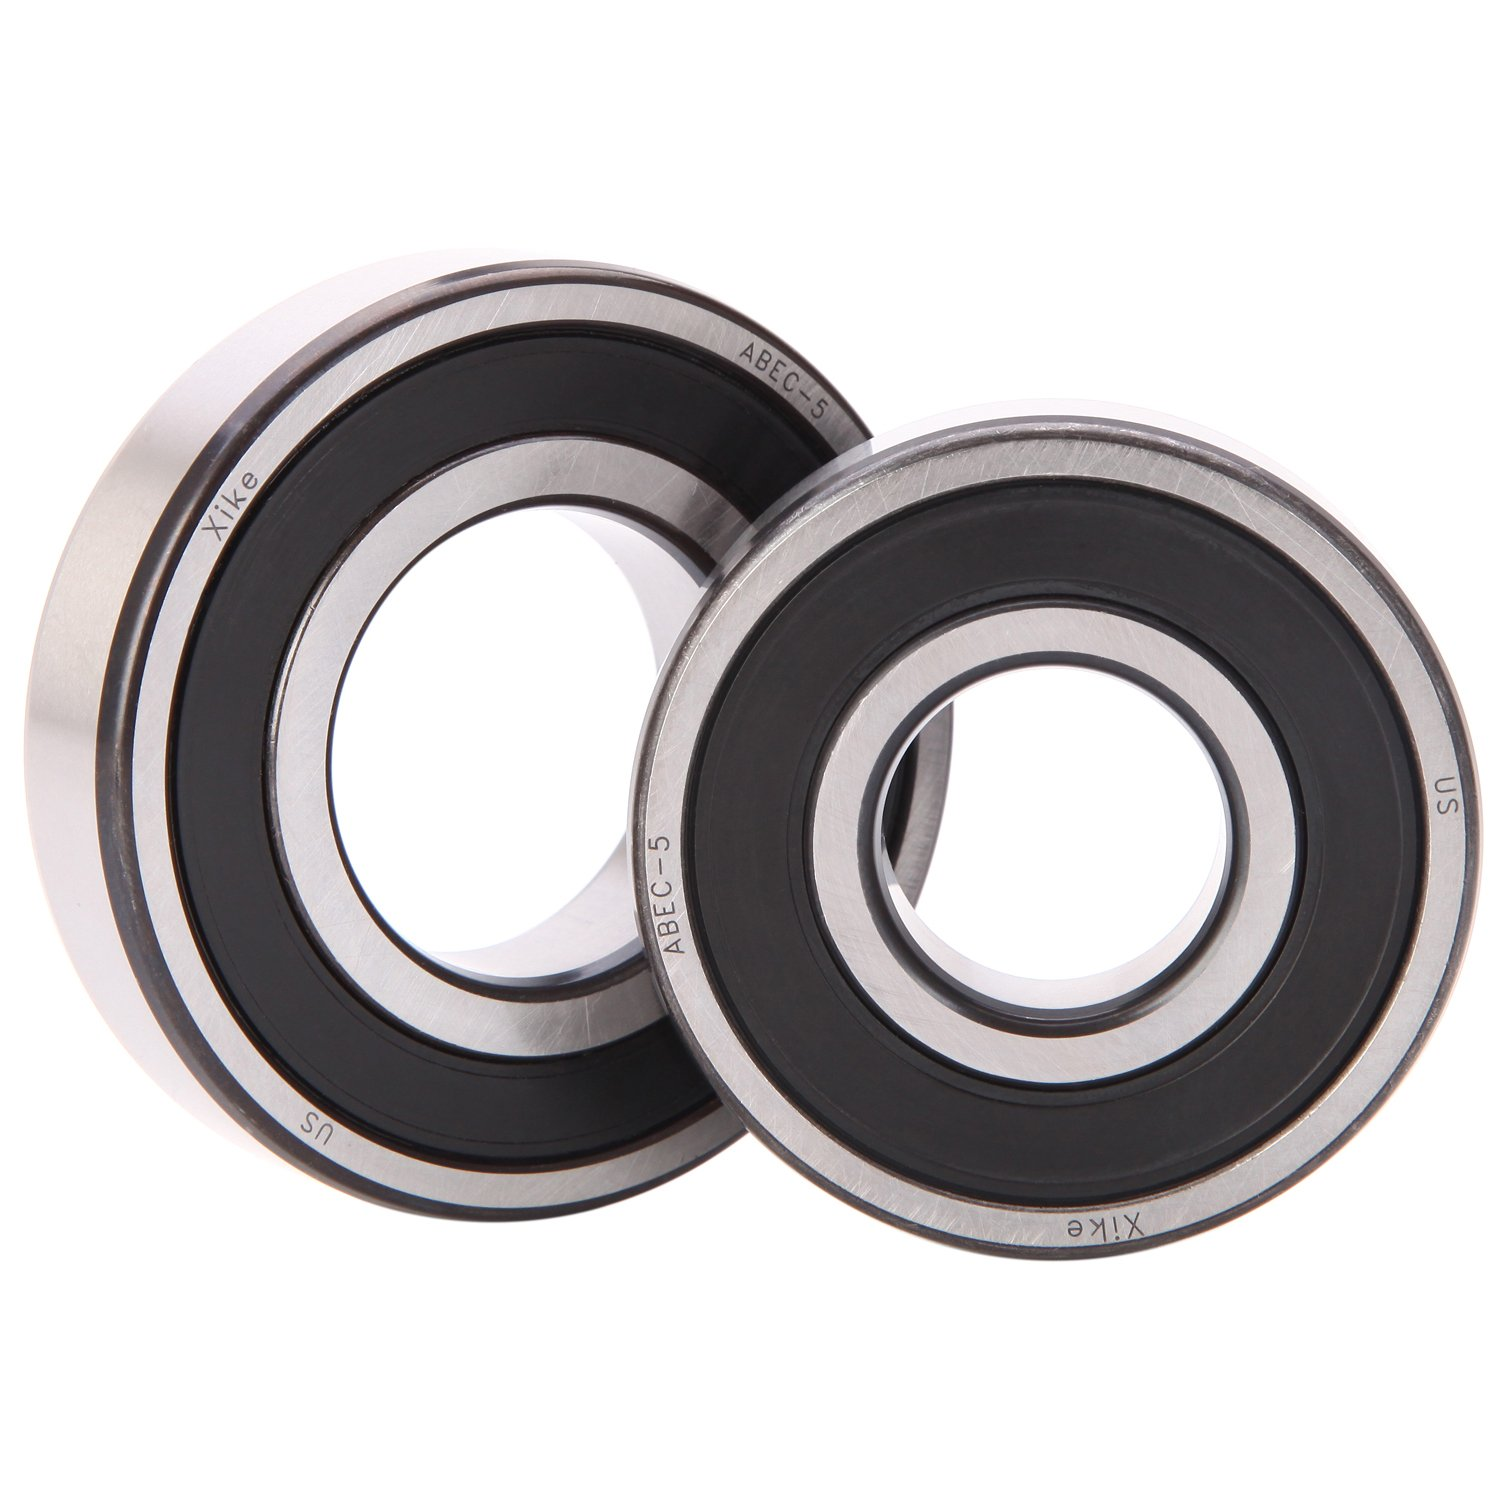 W10290562 Washer Tub Bearings and Seal Kit, Rotating Quiet High Speed and Long Life. Replaces Whirlpool, Maytag, PS11703210, W10283358, W10772619. by XiKe (Image #2)